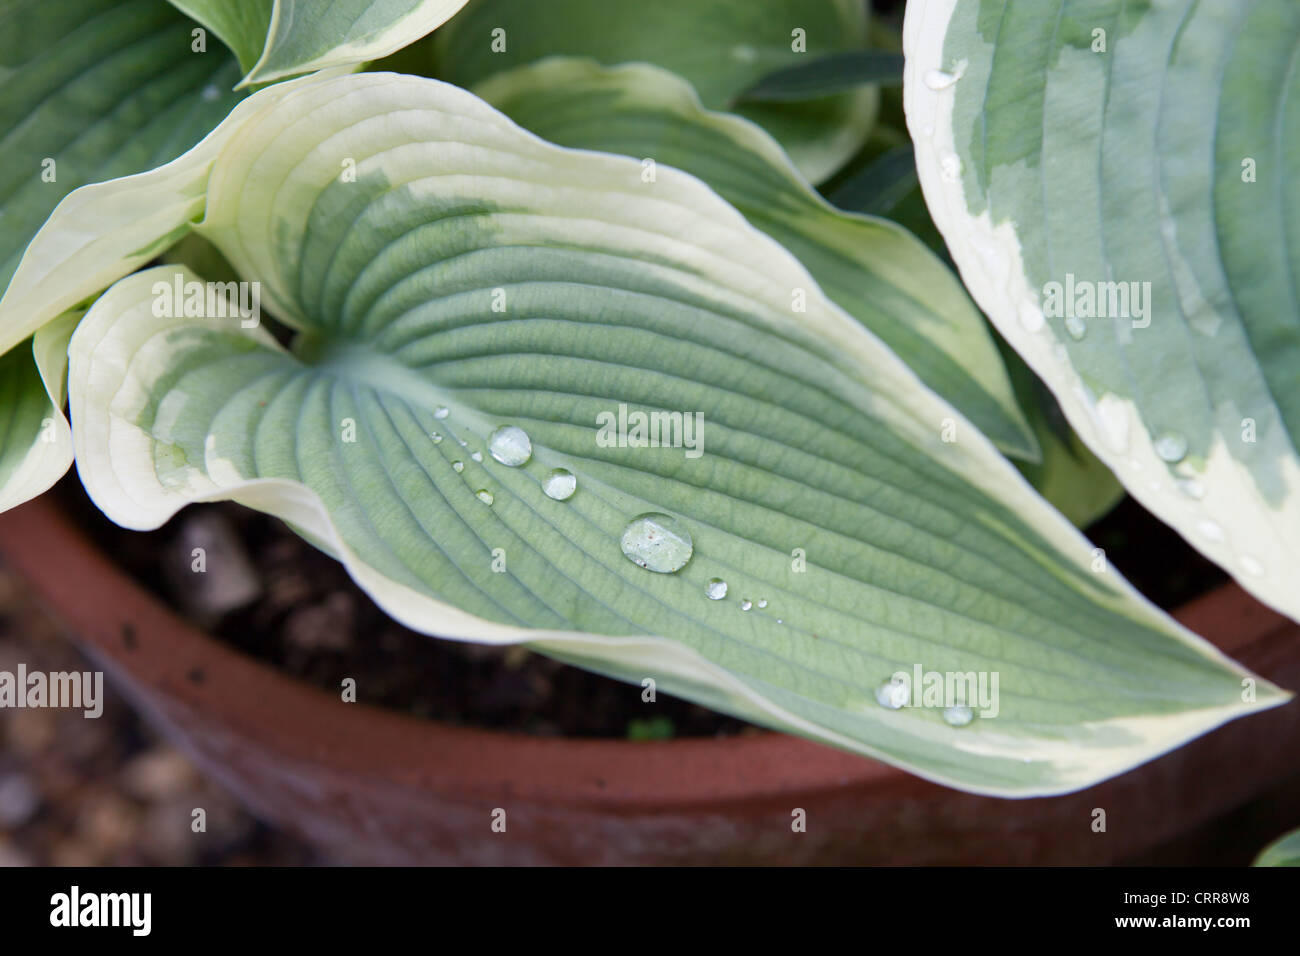 Hosta Variegated Leaf Stock Photos Hosta Variegated Leaf Stock